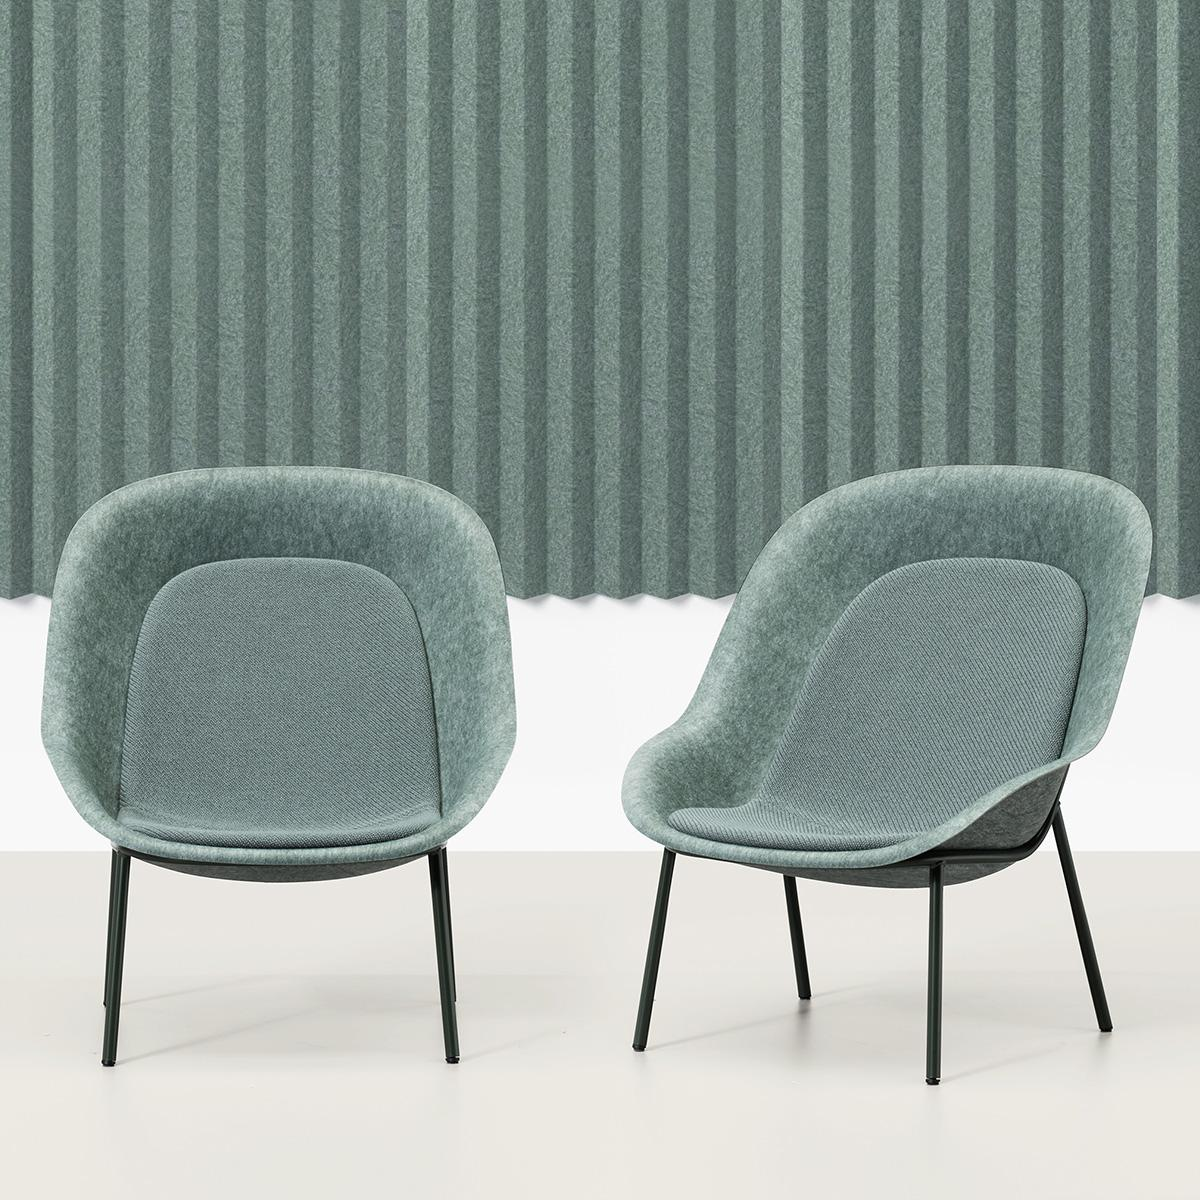 Nook Chair 1200_0003_De-Vorm-Lookbook-76